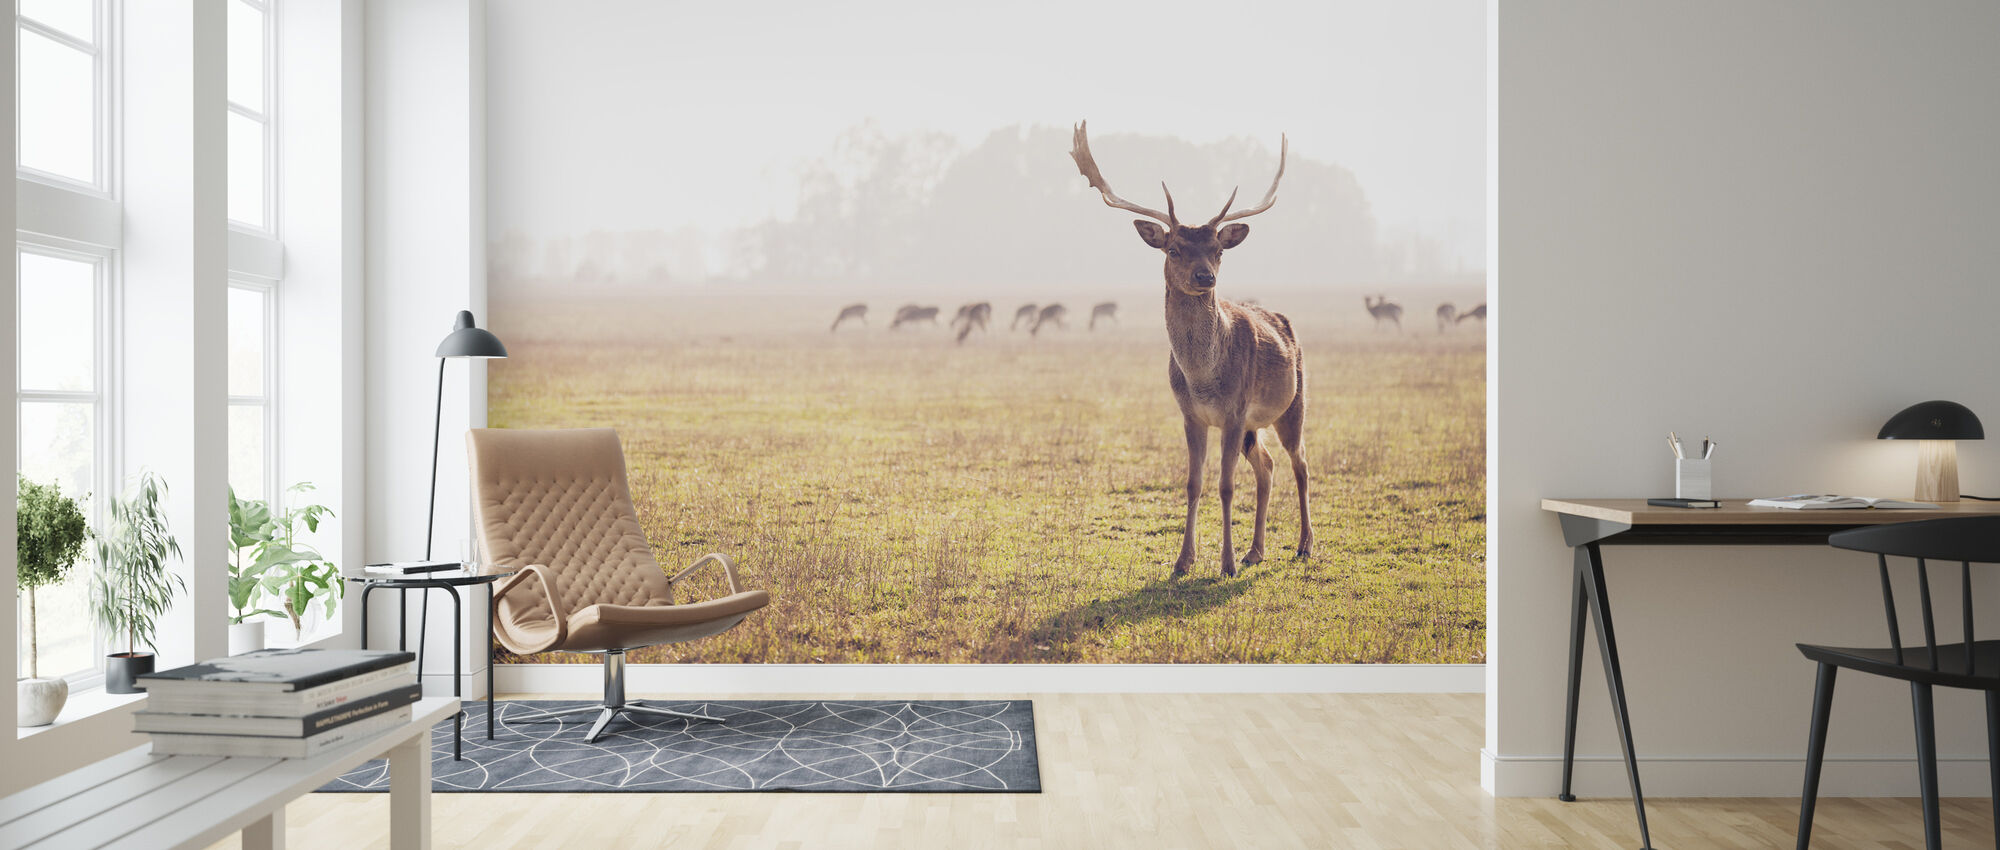 Fallow Deer - Wallpaper - Living Room